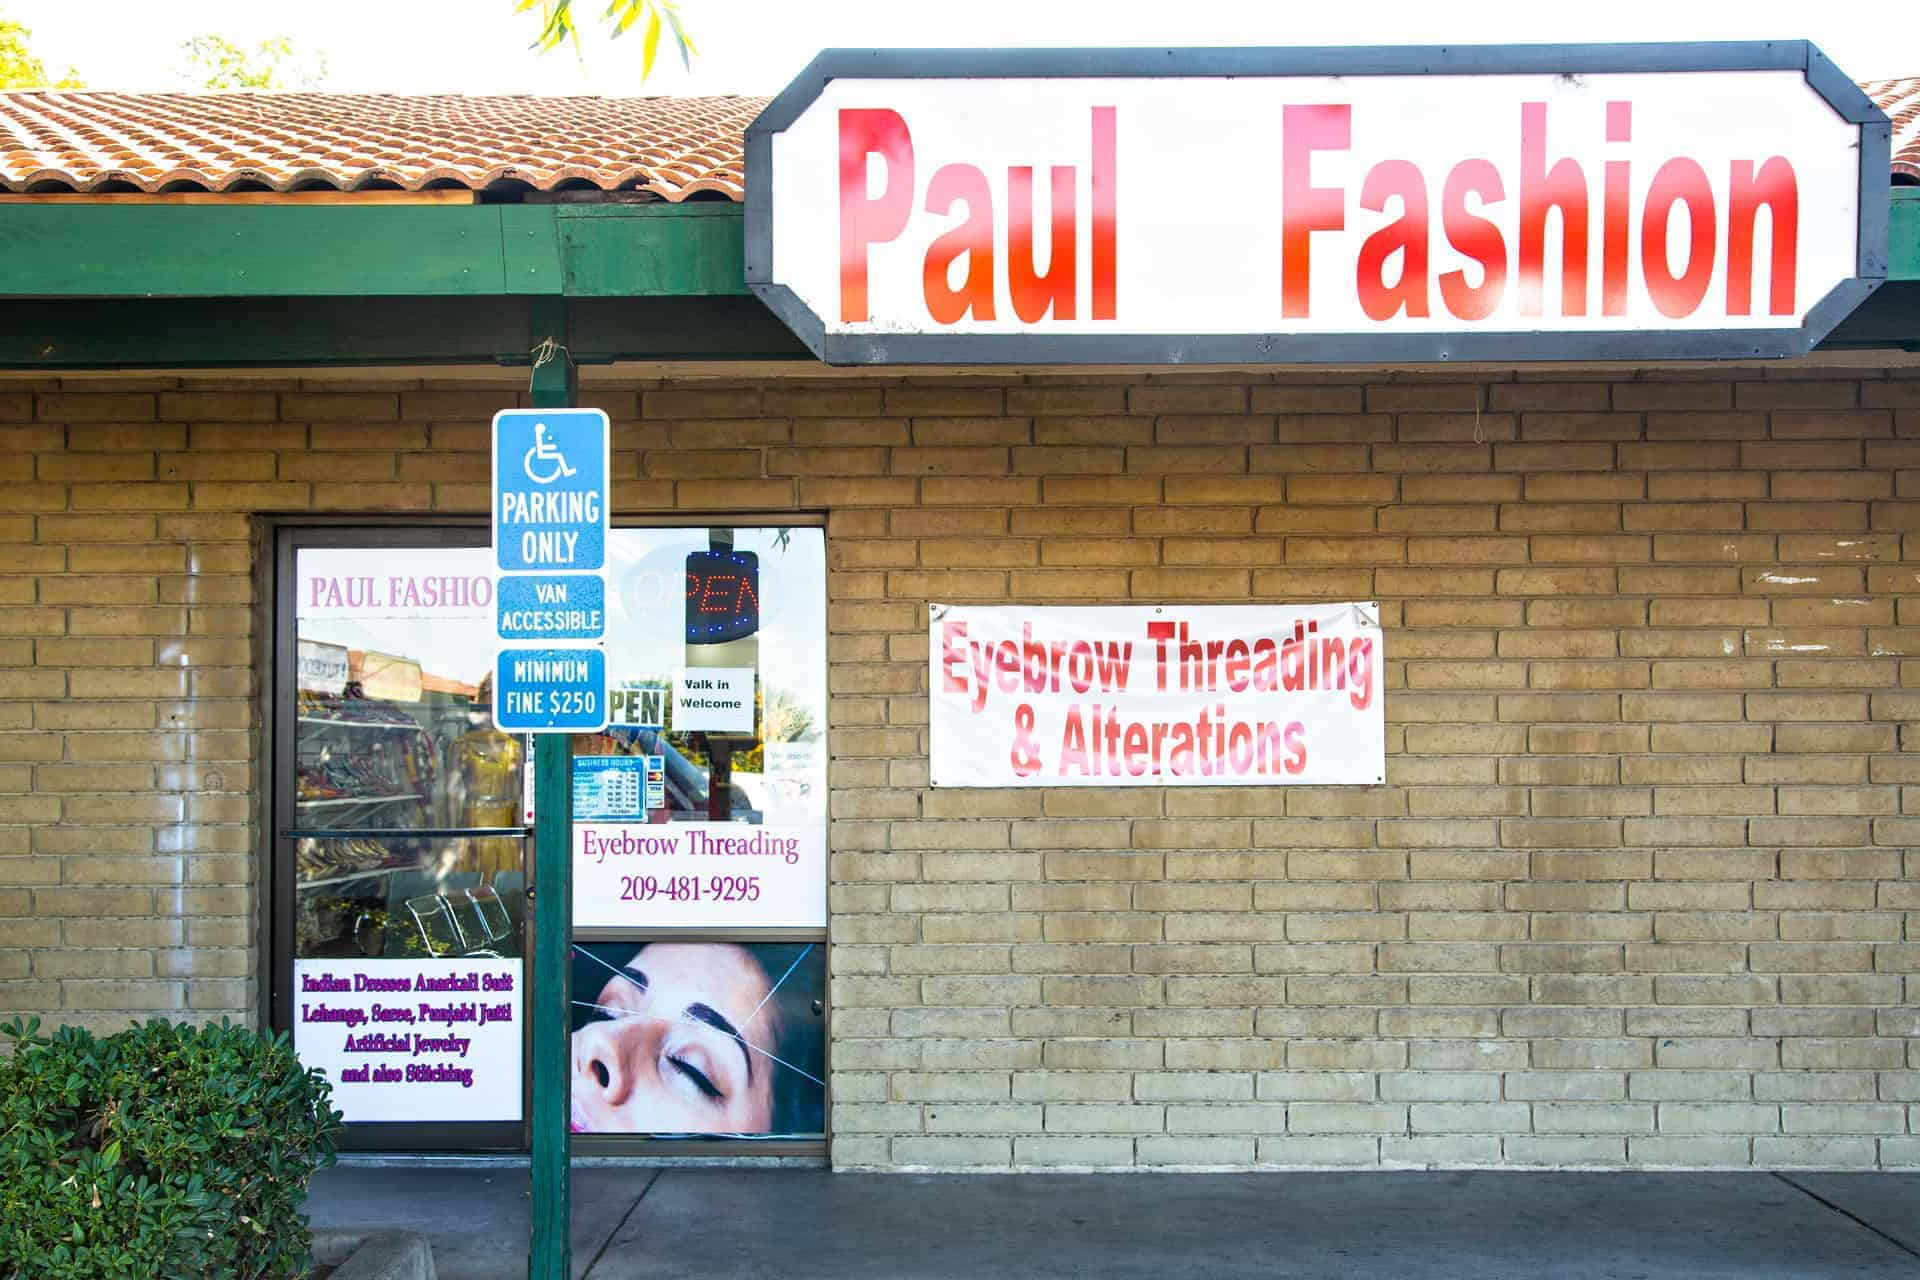 Paul Fashion